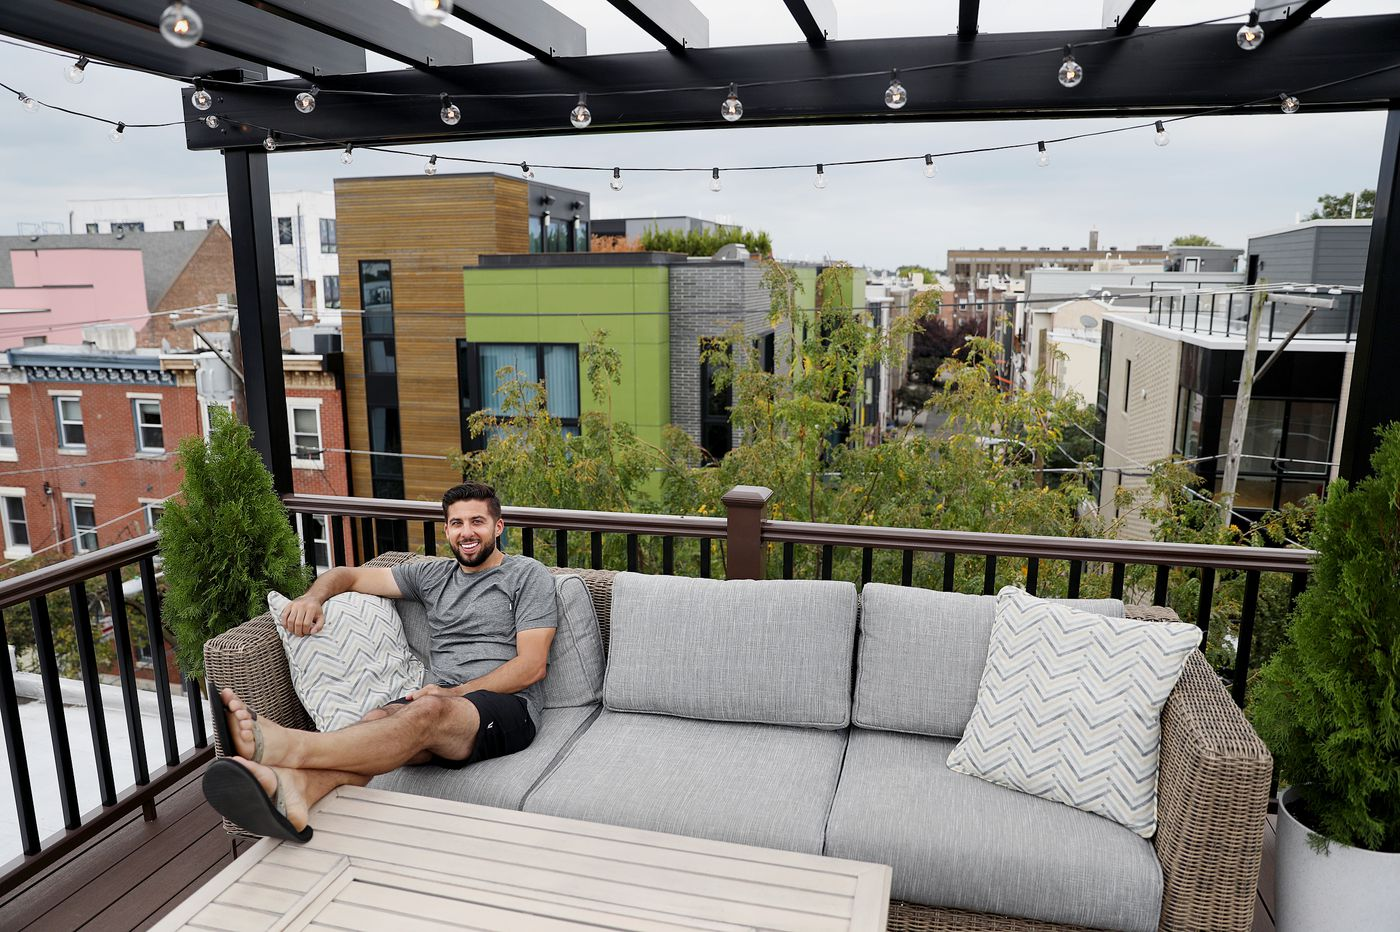 Roof decks are becoming a must-have for Philly homeowners and buyers